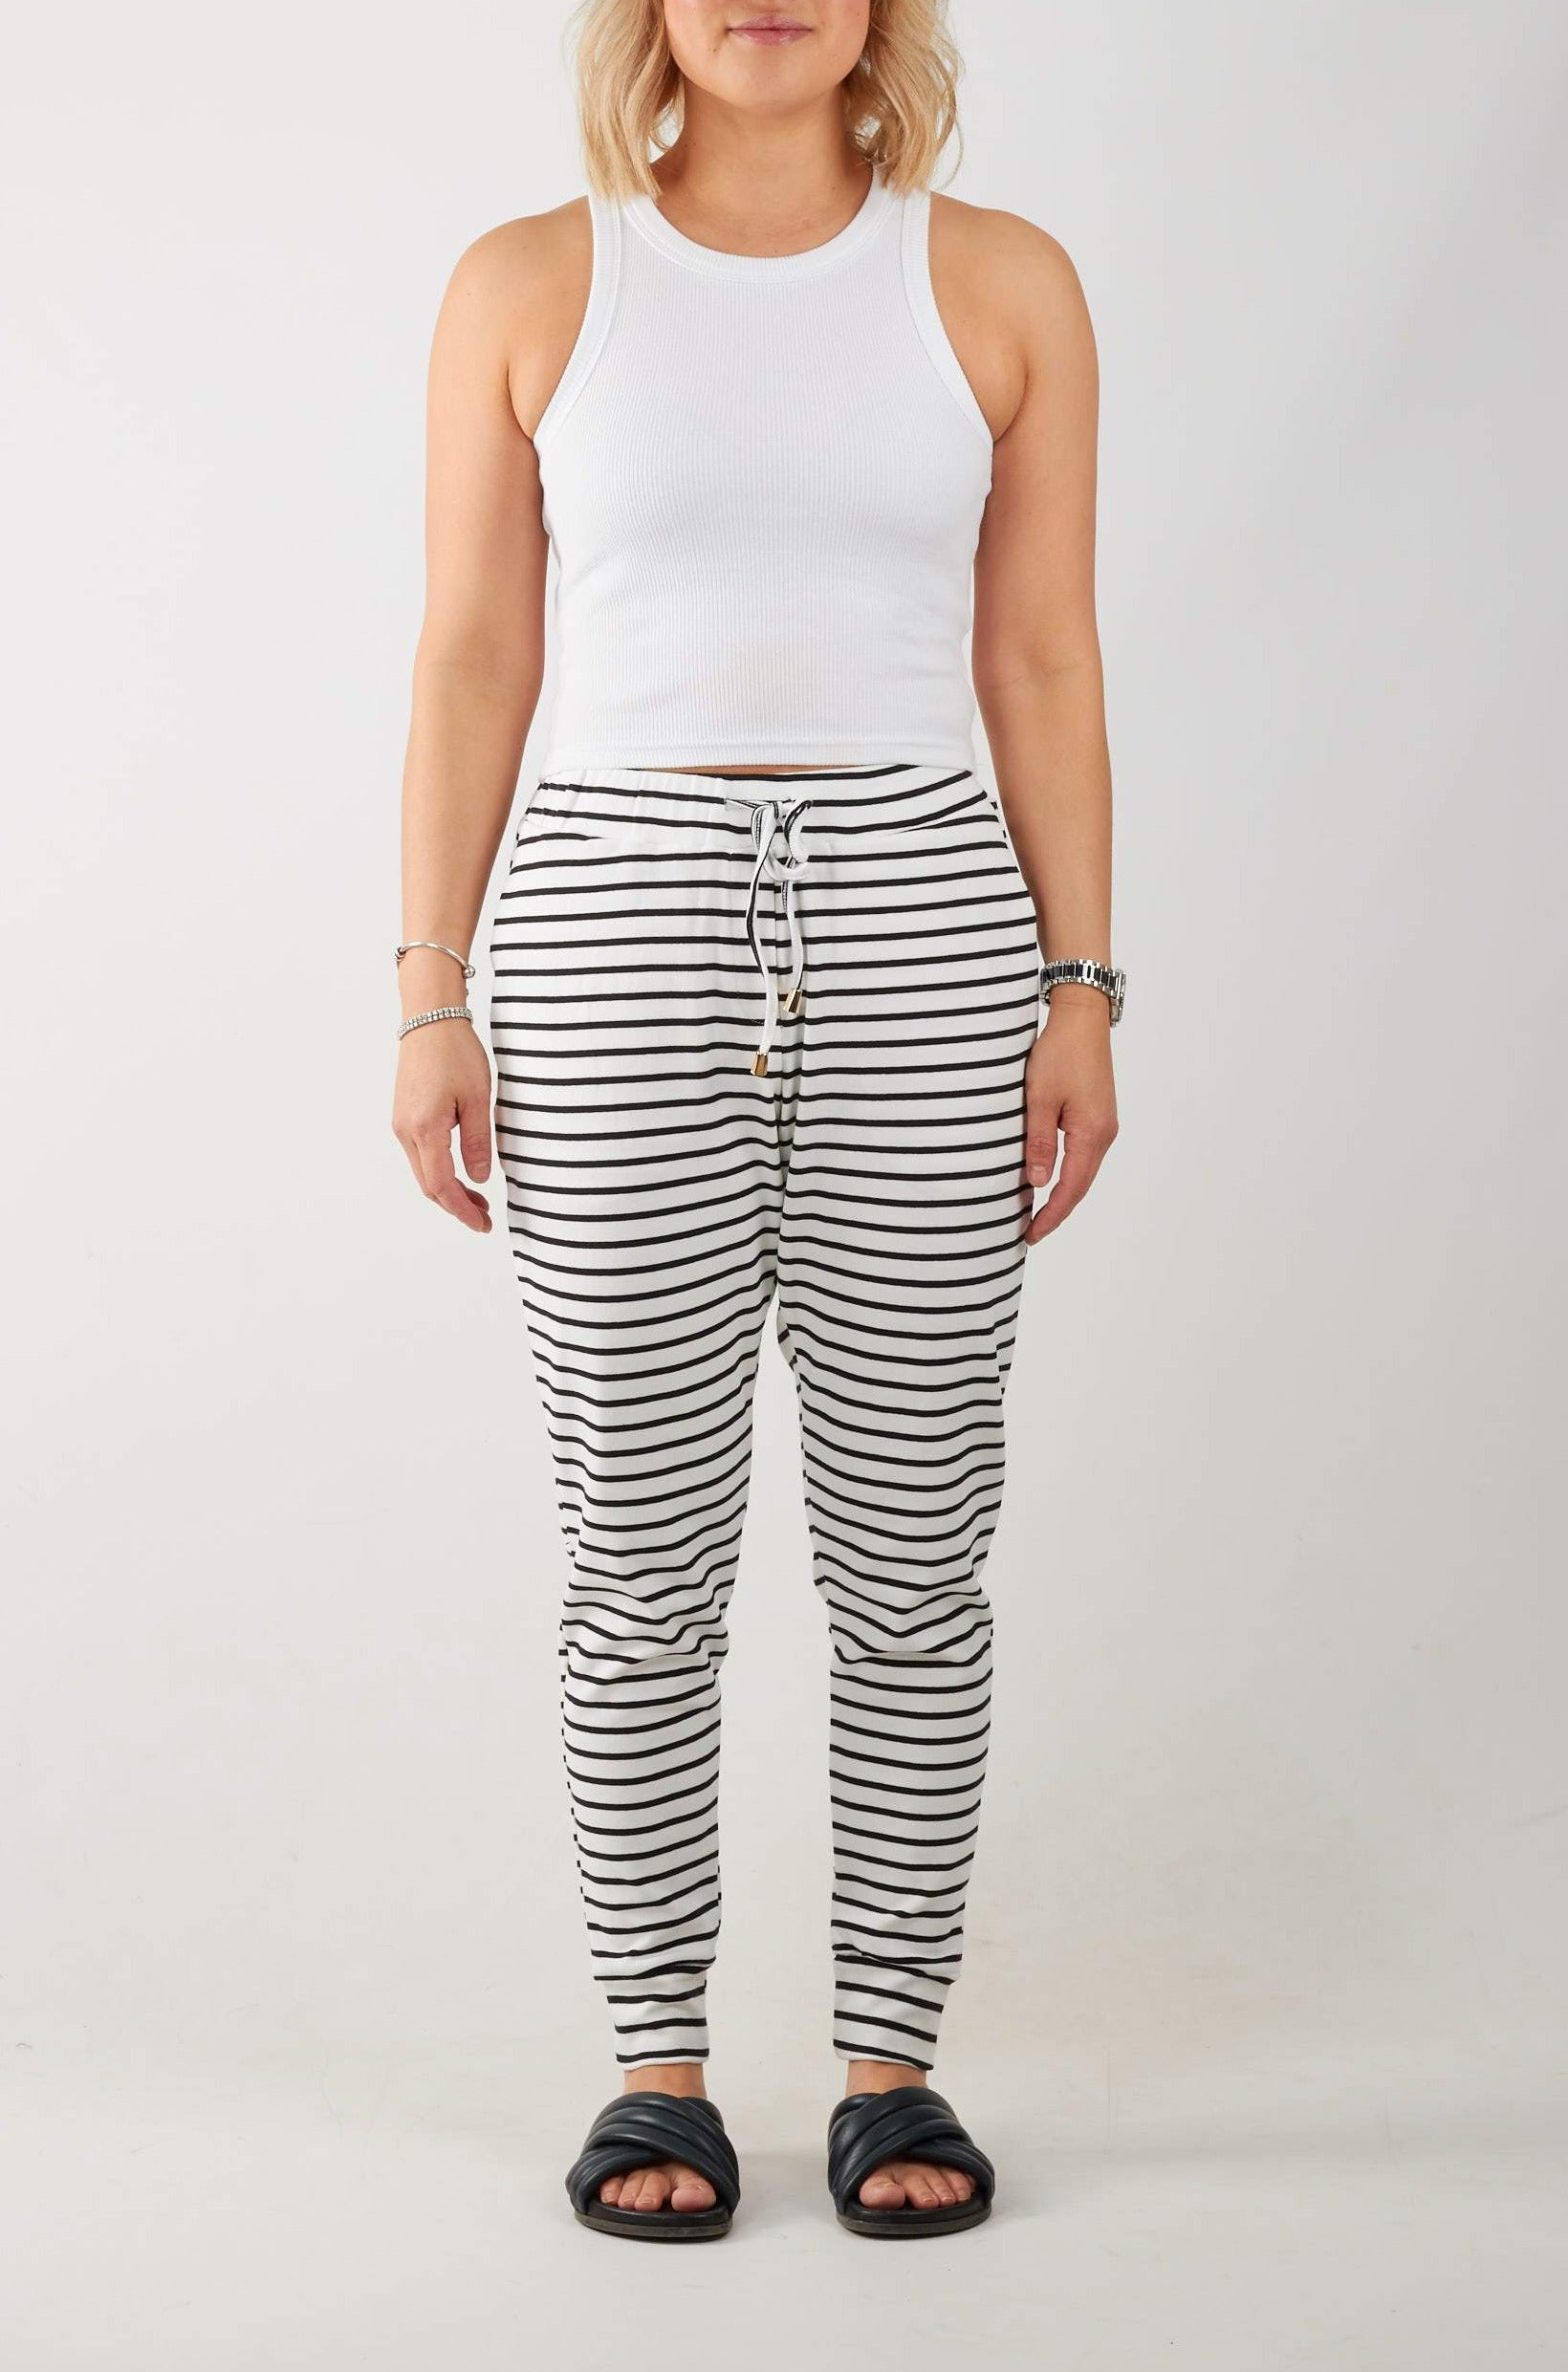 JAMAICA PANTS- WHT/BLK STR